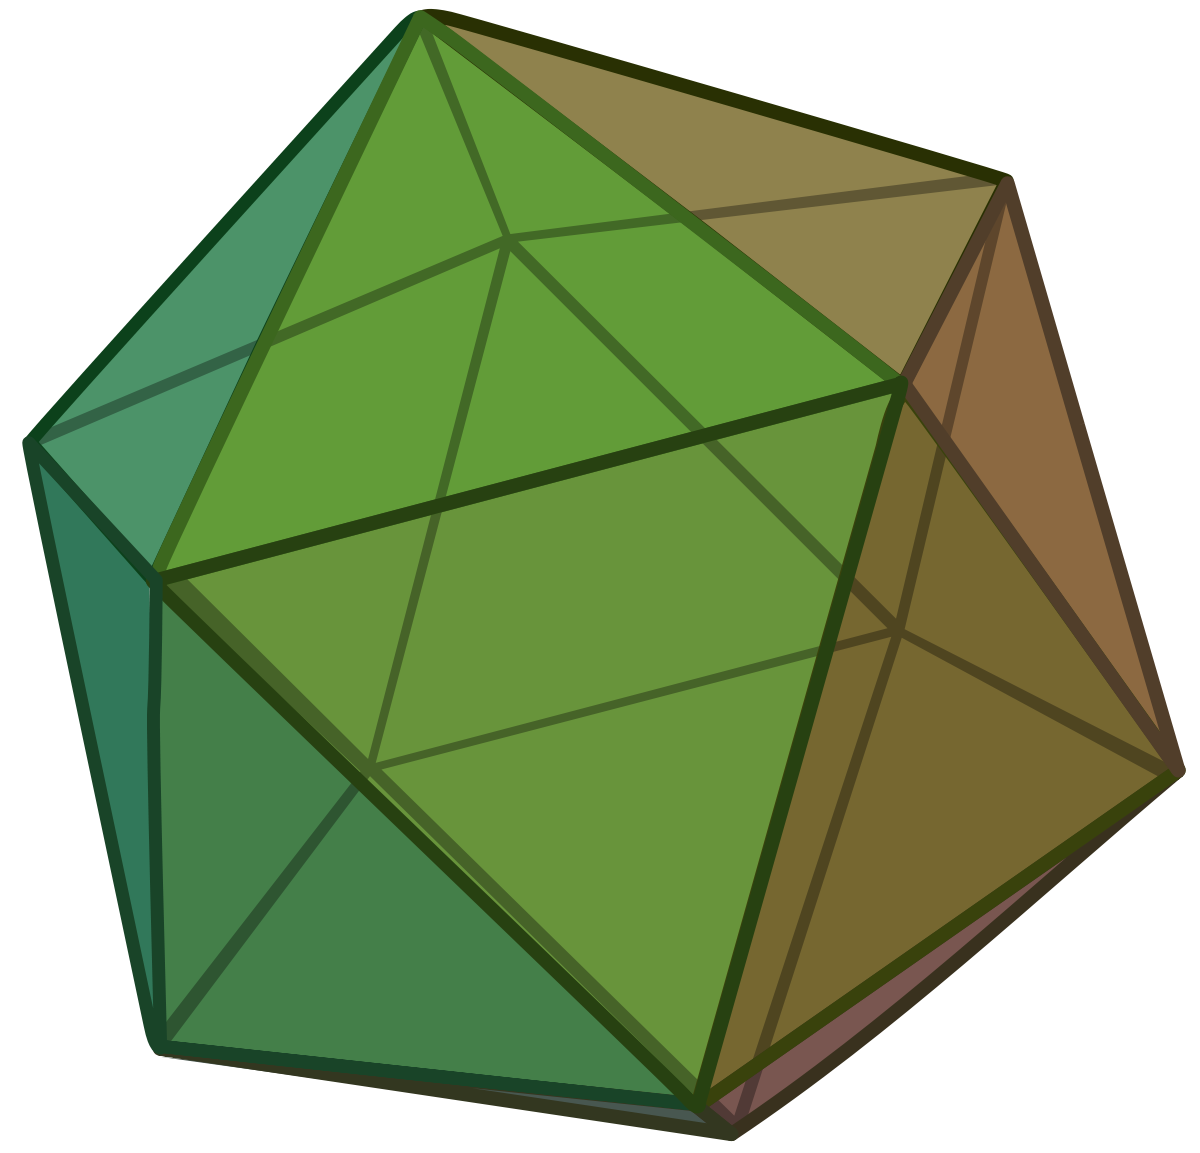 Icosahedron wikipedia . D20 clipart 20 sided dice